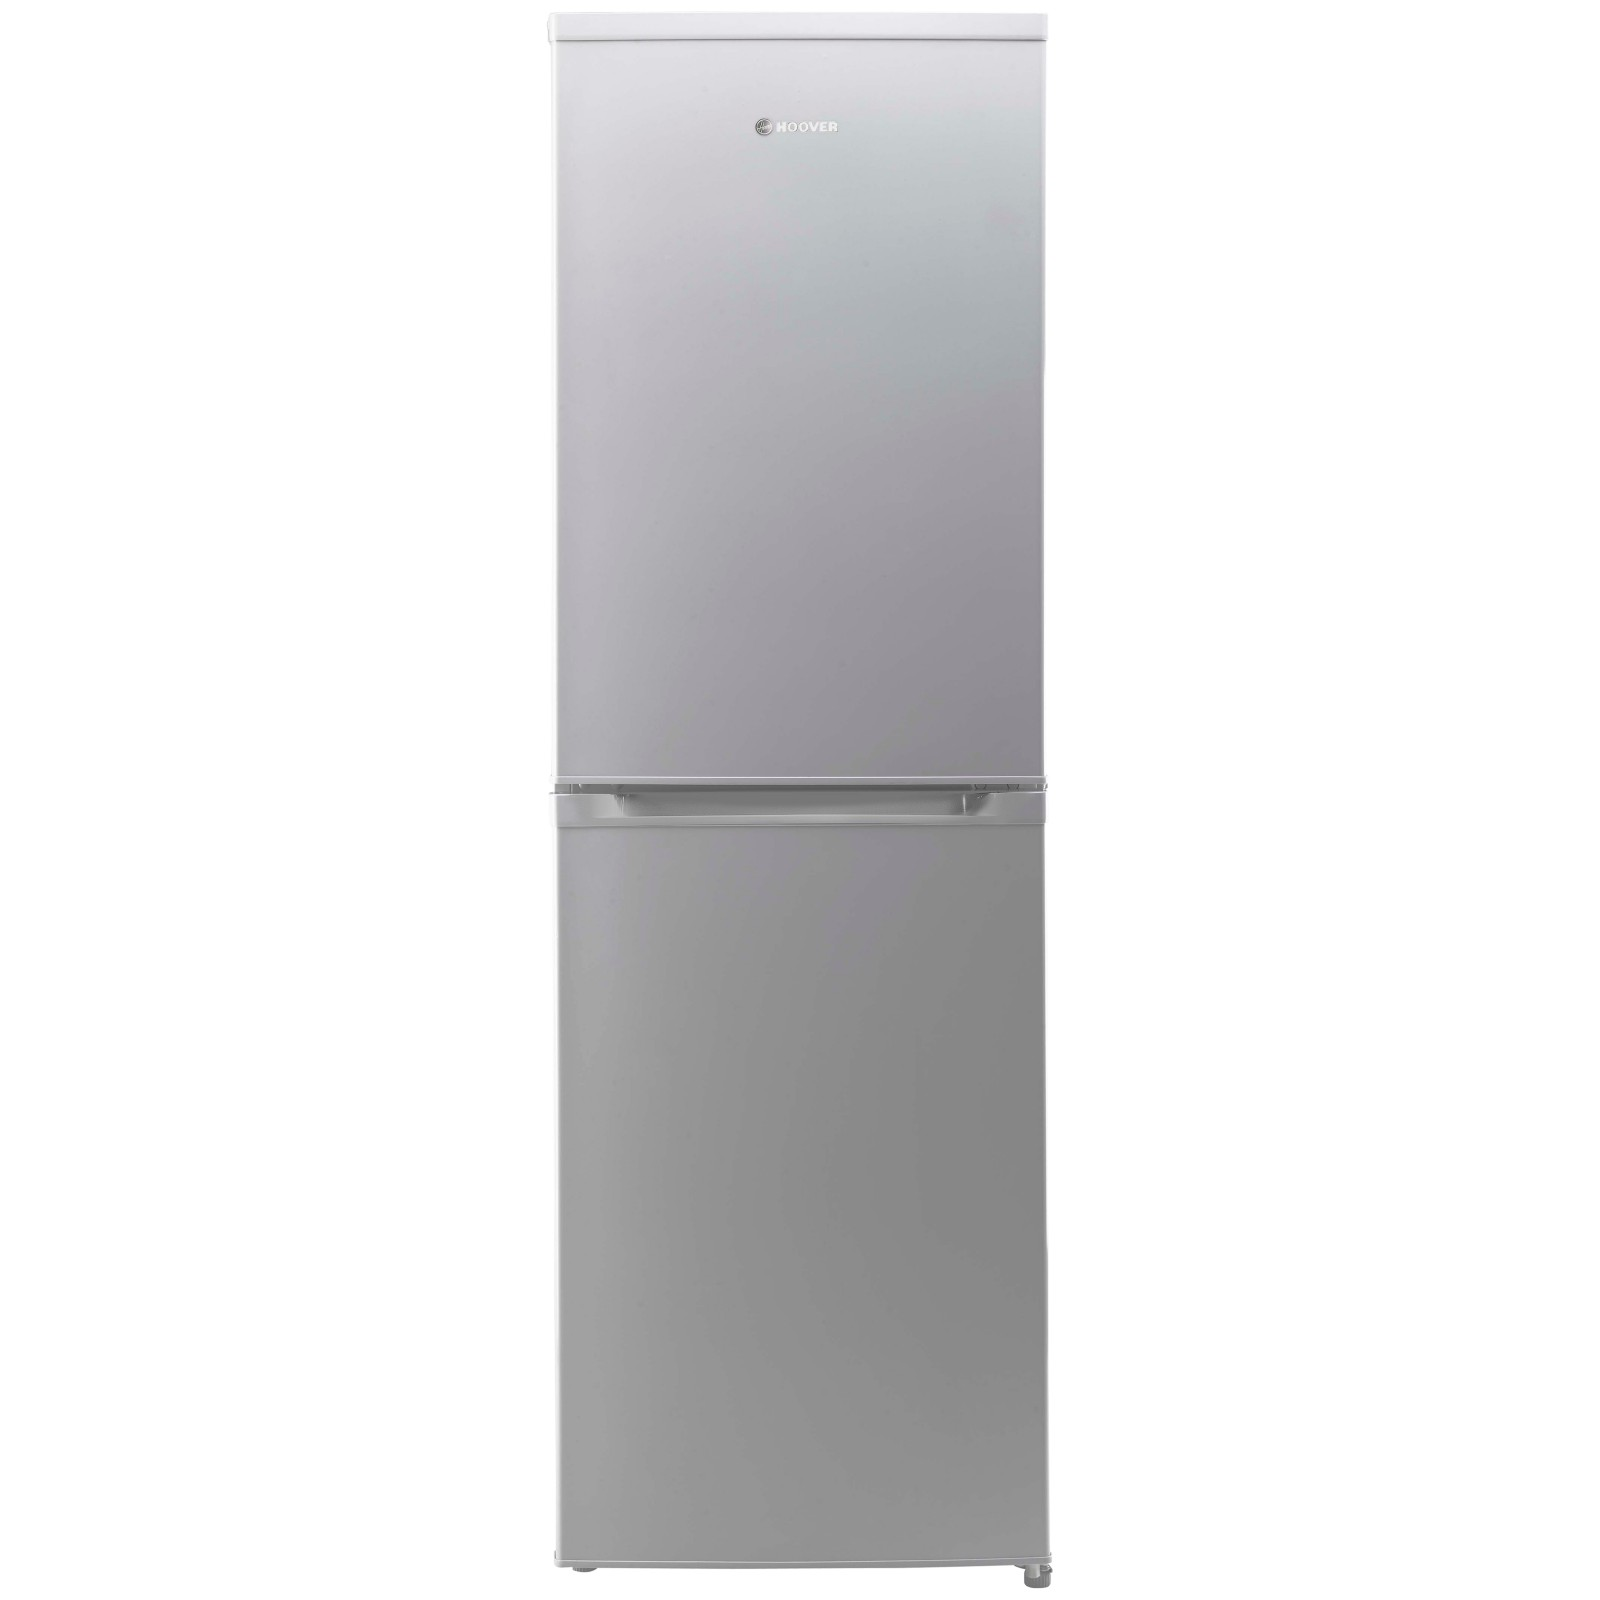 Hoover HVBF5182AK Freestanding Frost Free Fridge Freezer